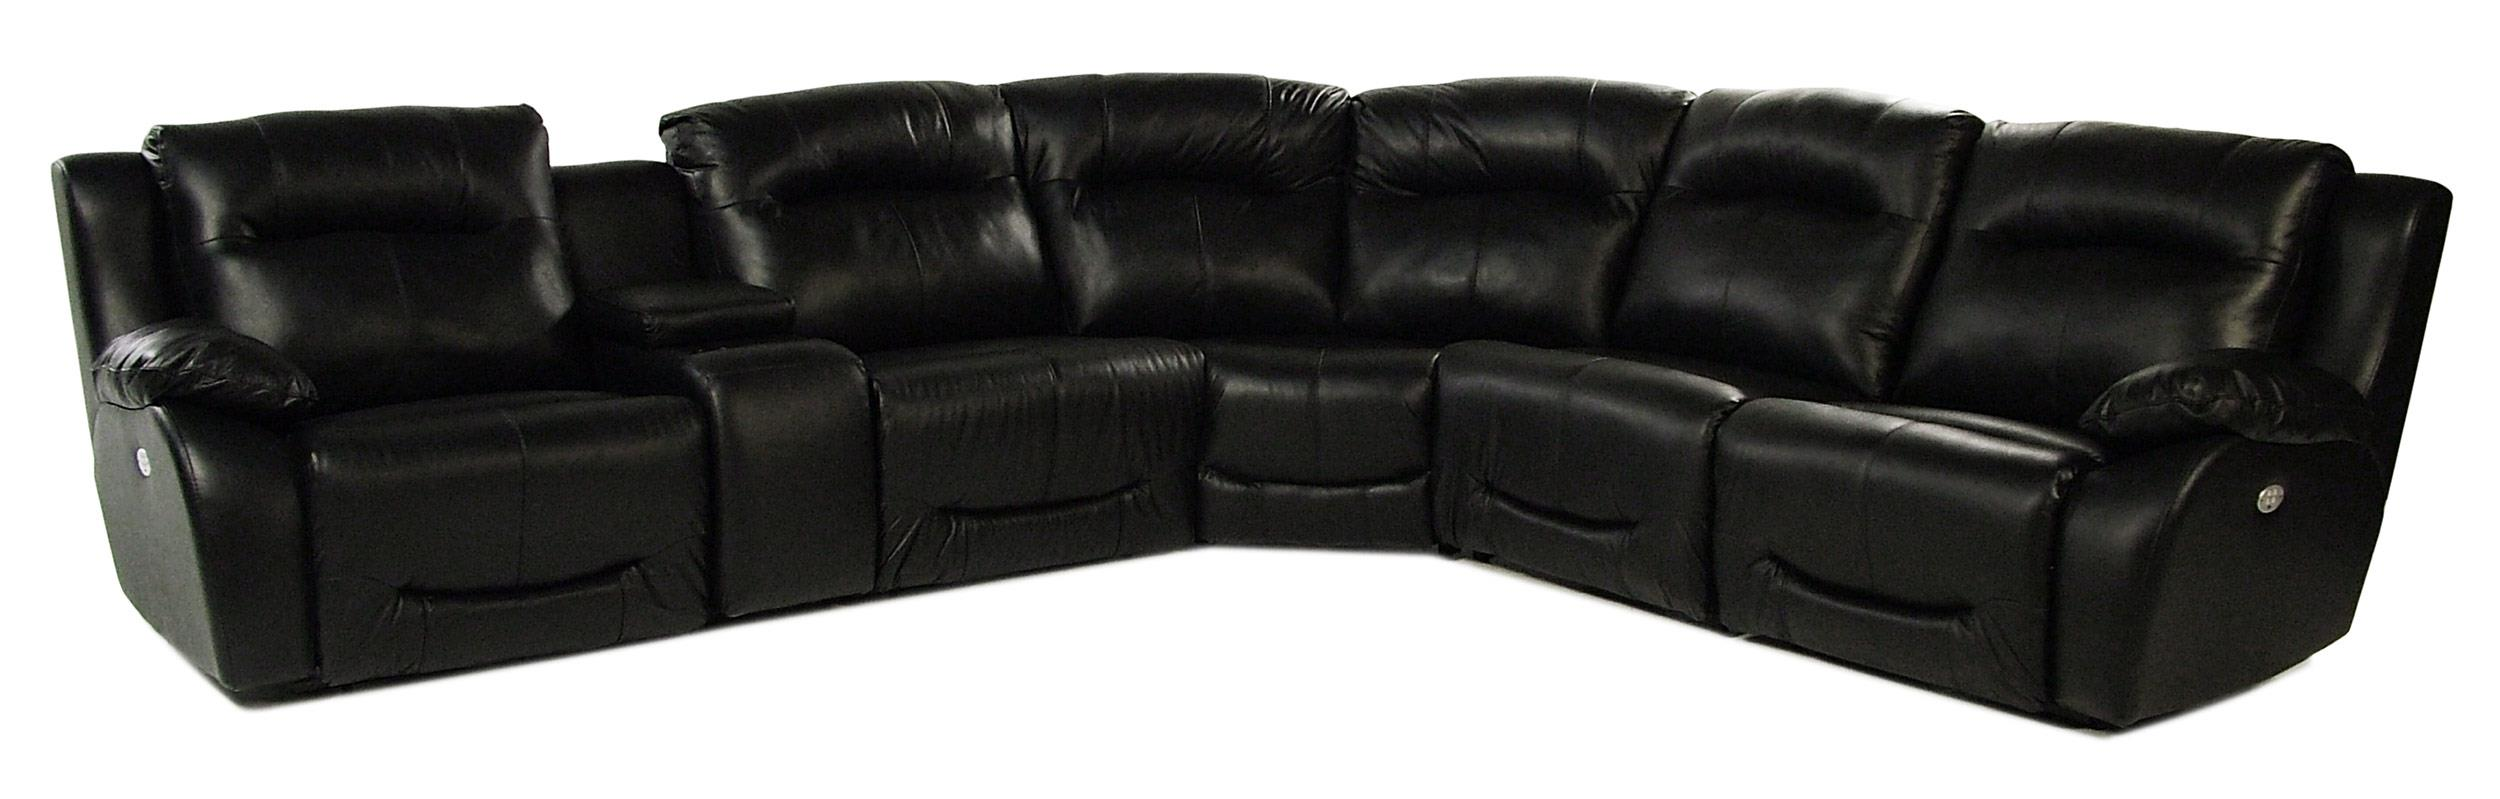 Design to Recline Raven 6PC Leather Power Reclining Sectional  - Item Number: 566-6PC-SECT